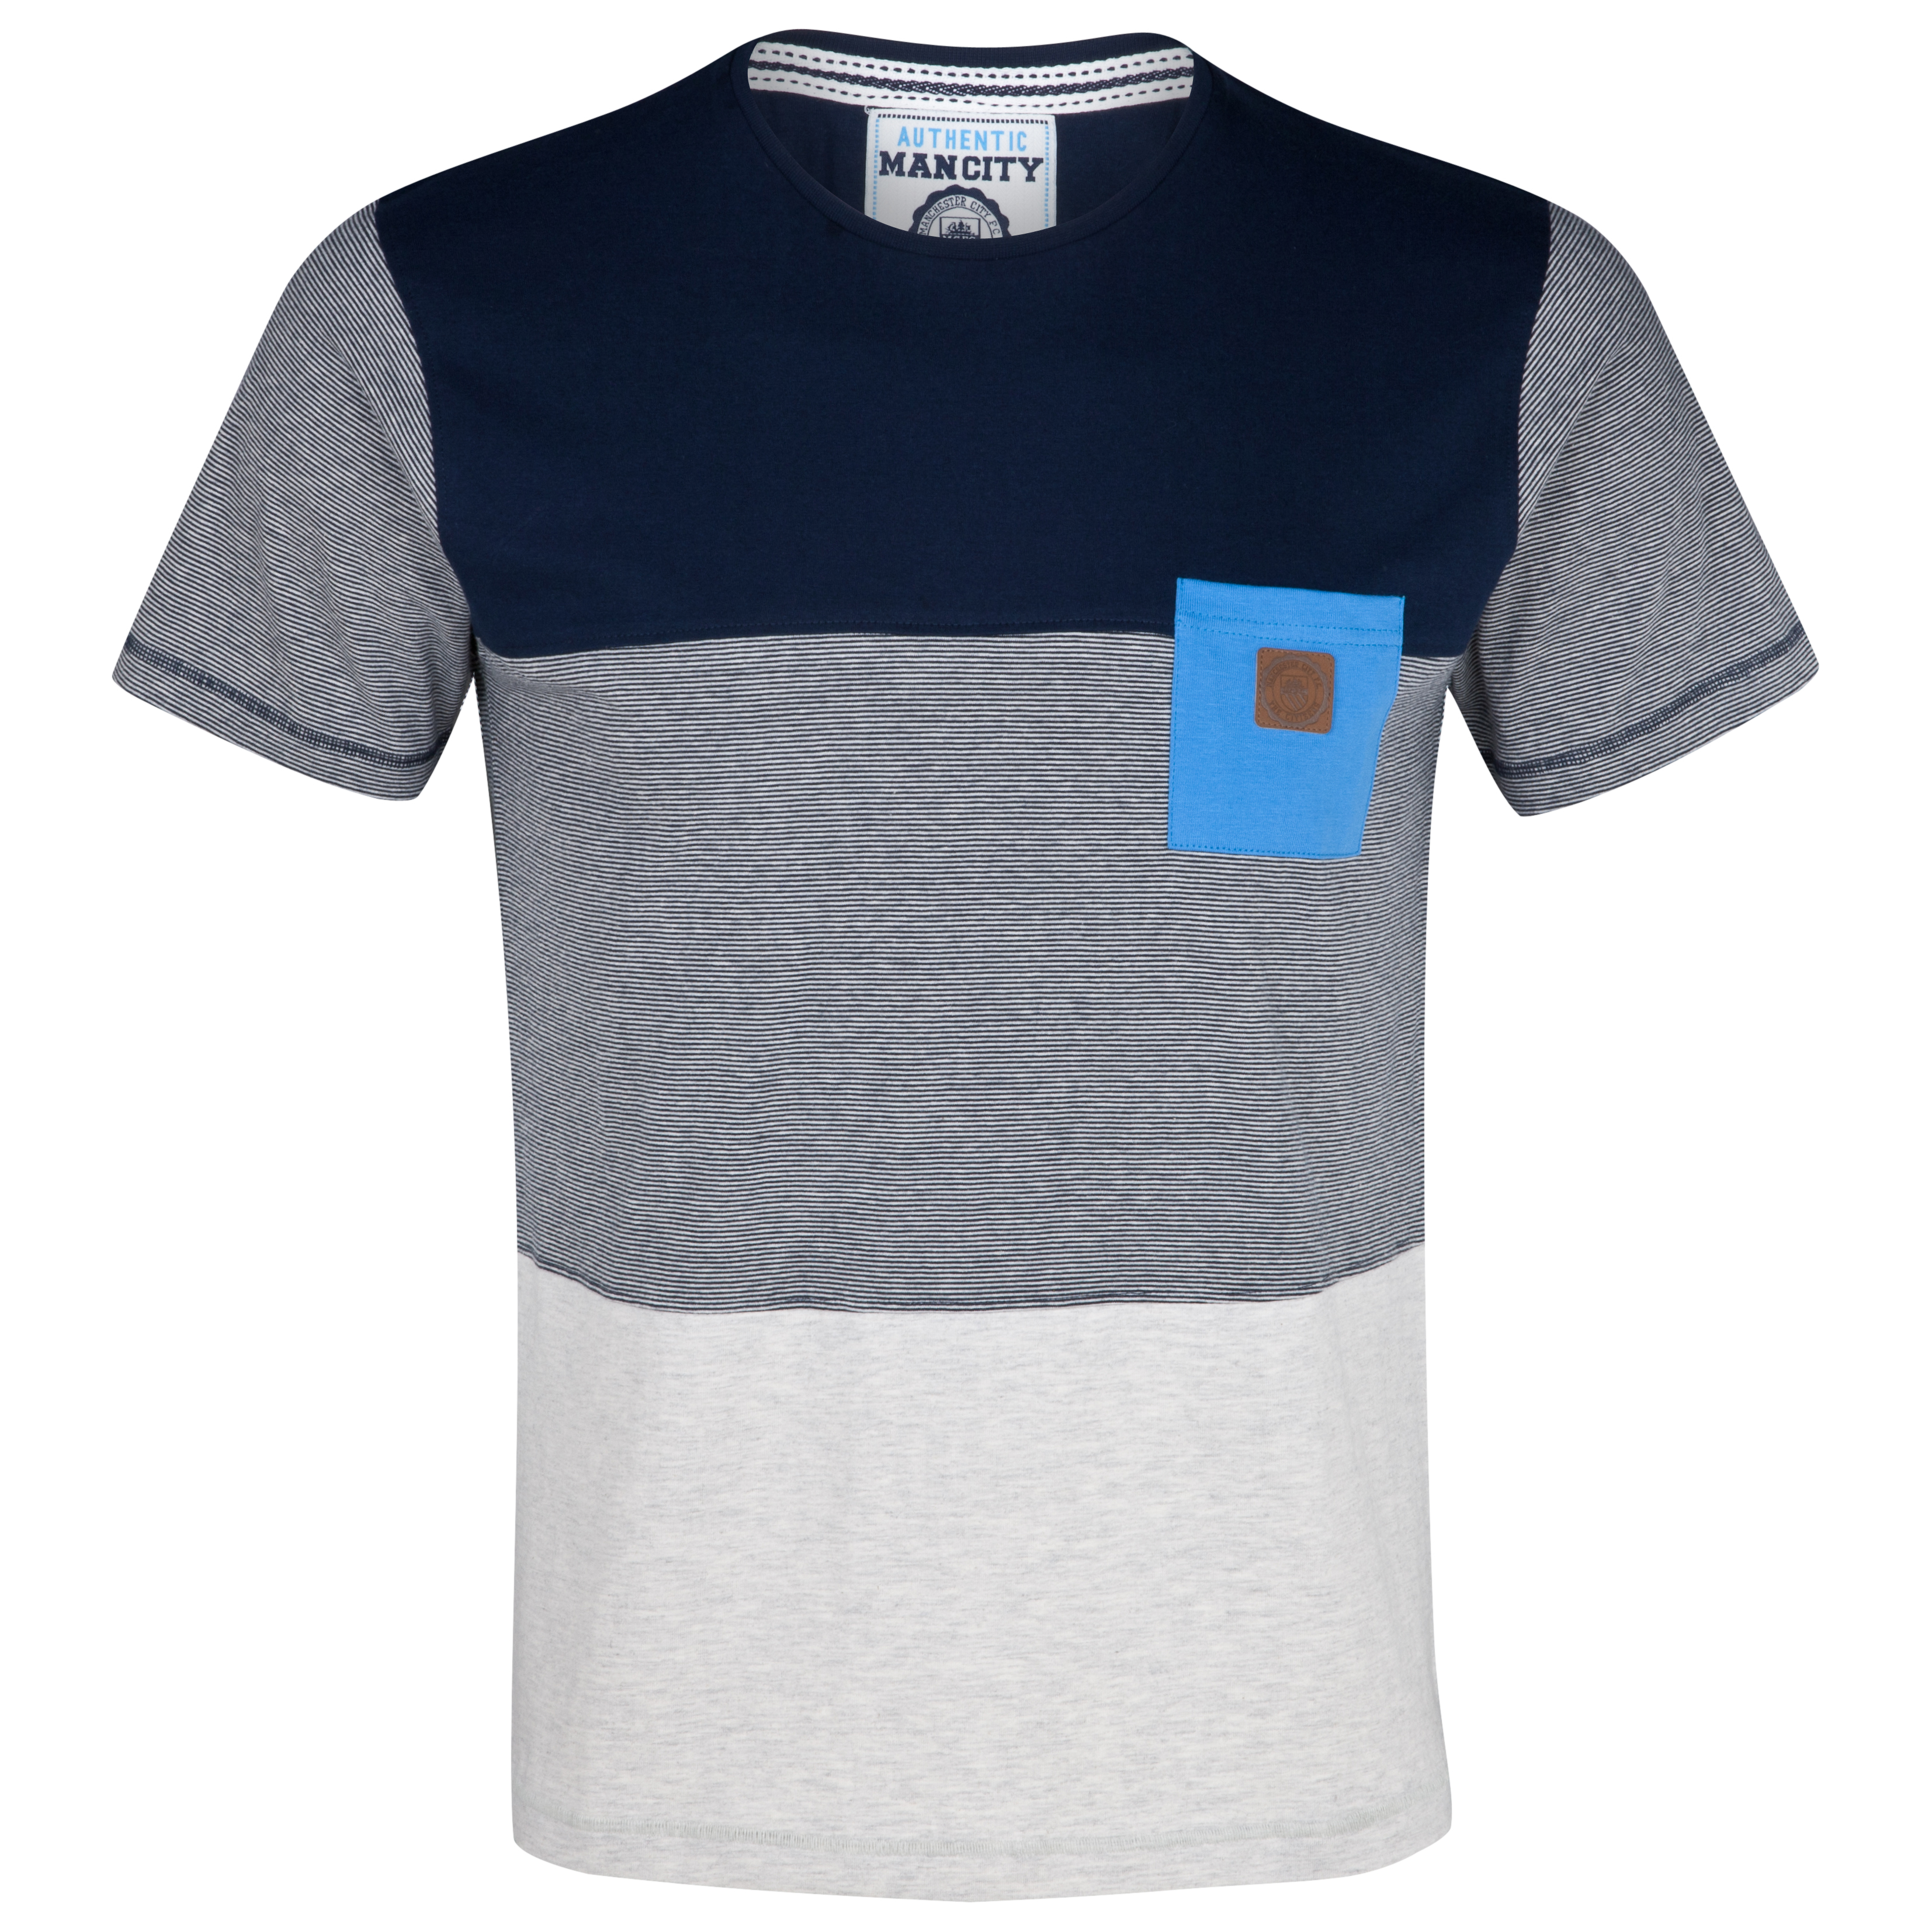 Manchester City Panels T-Shirt - Navy/Ecru Marl